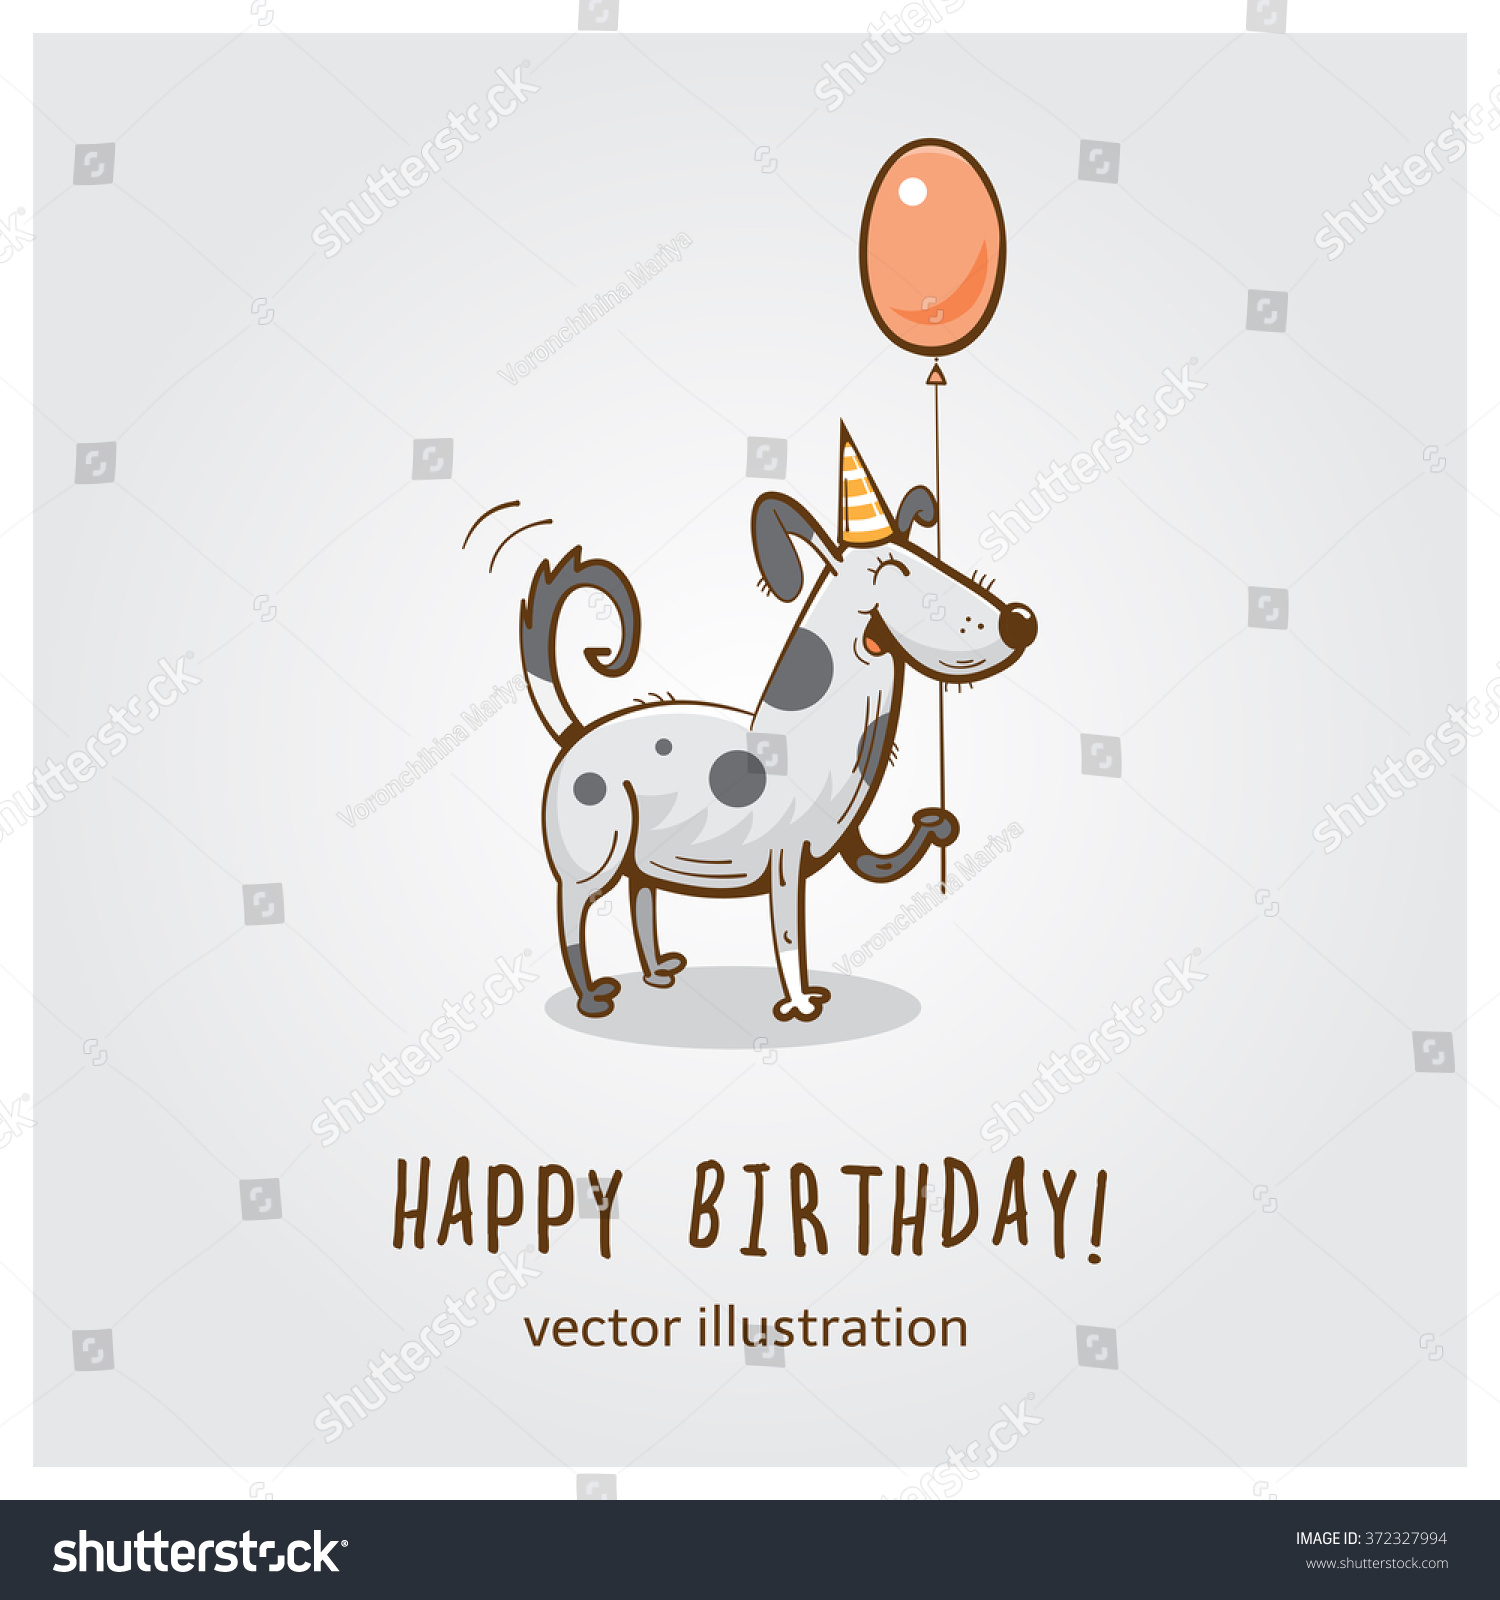 Birthday Card With Cartoon Funny Dog And Red Balloon Vector Illustration